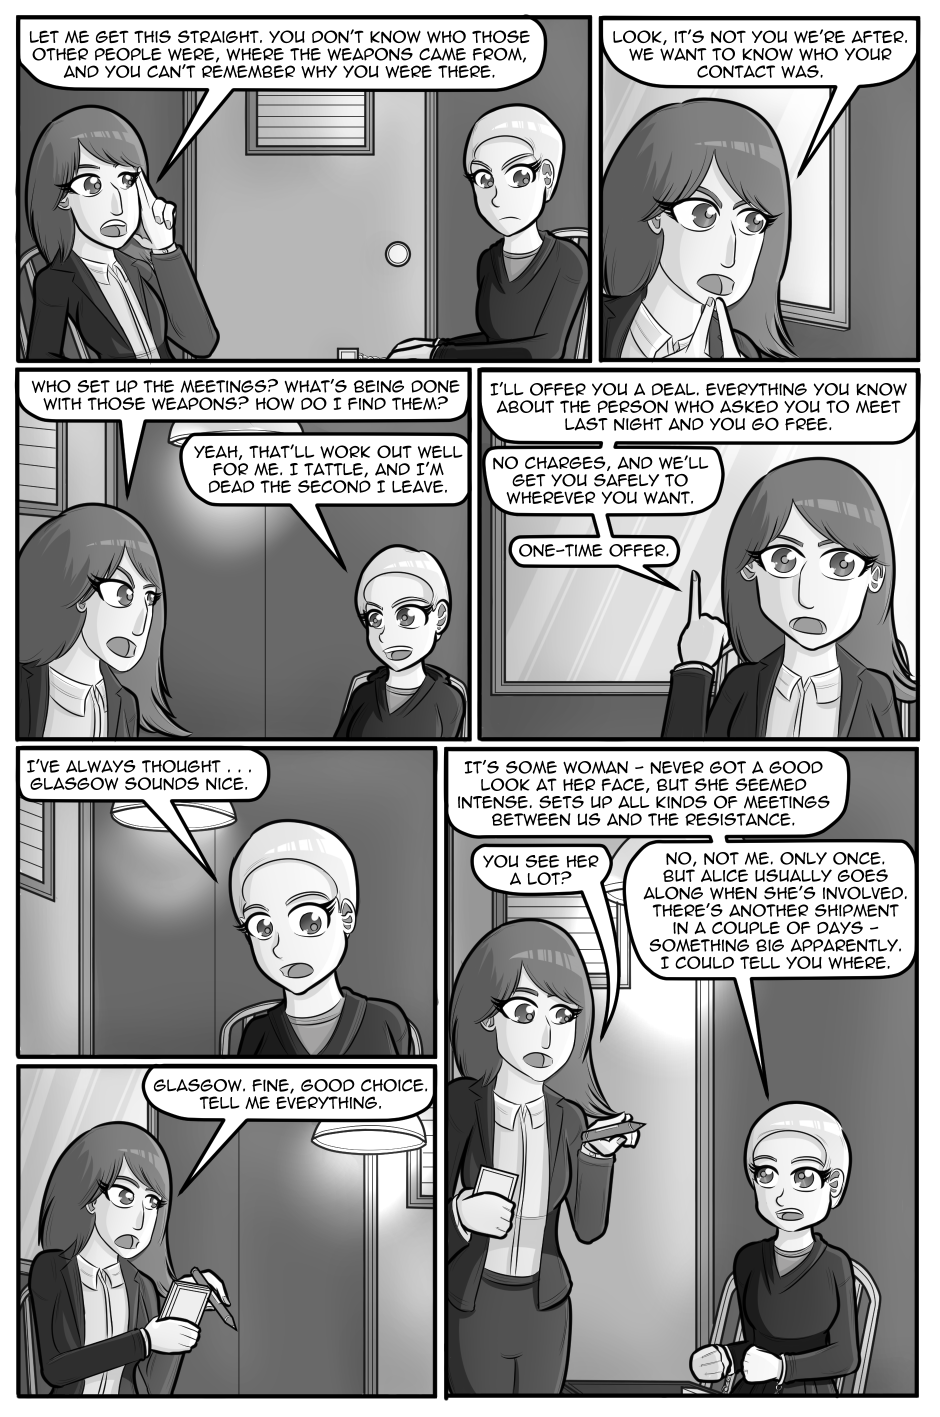 Shadows and Spectres - Part 14